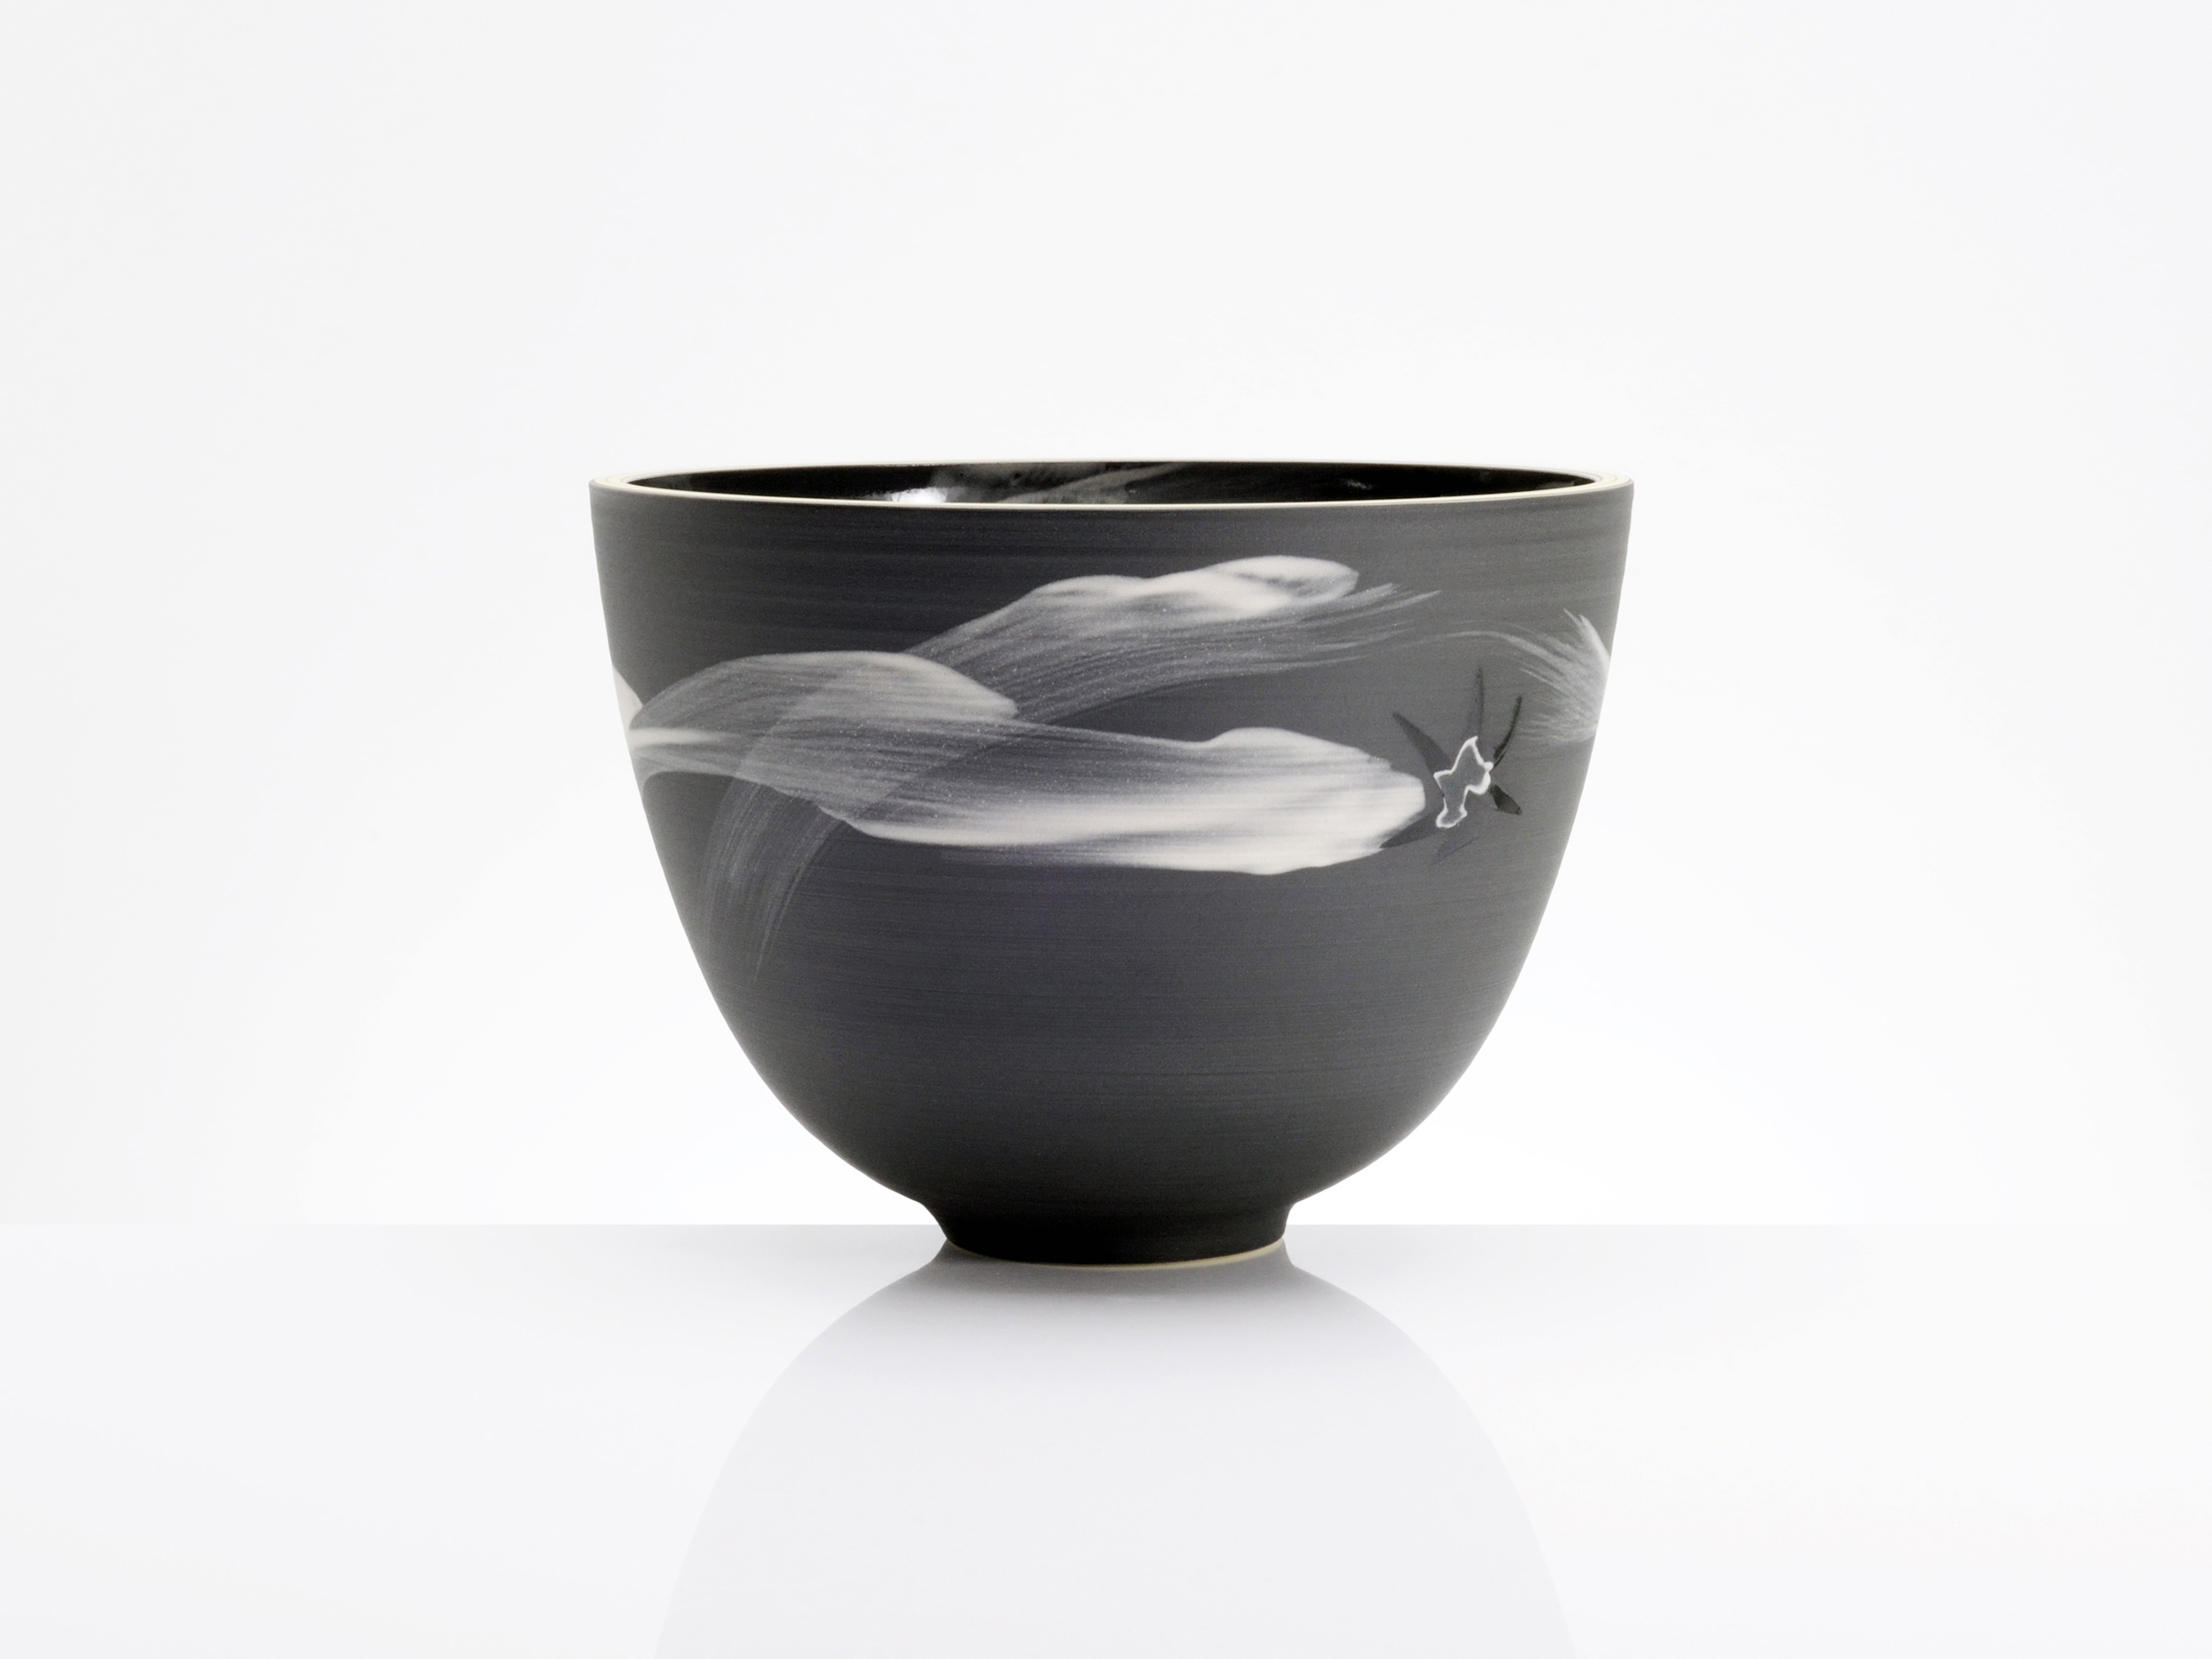 X-Wing Fighter Star Wars Bowl by Rowena Gilbert